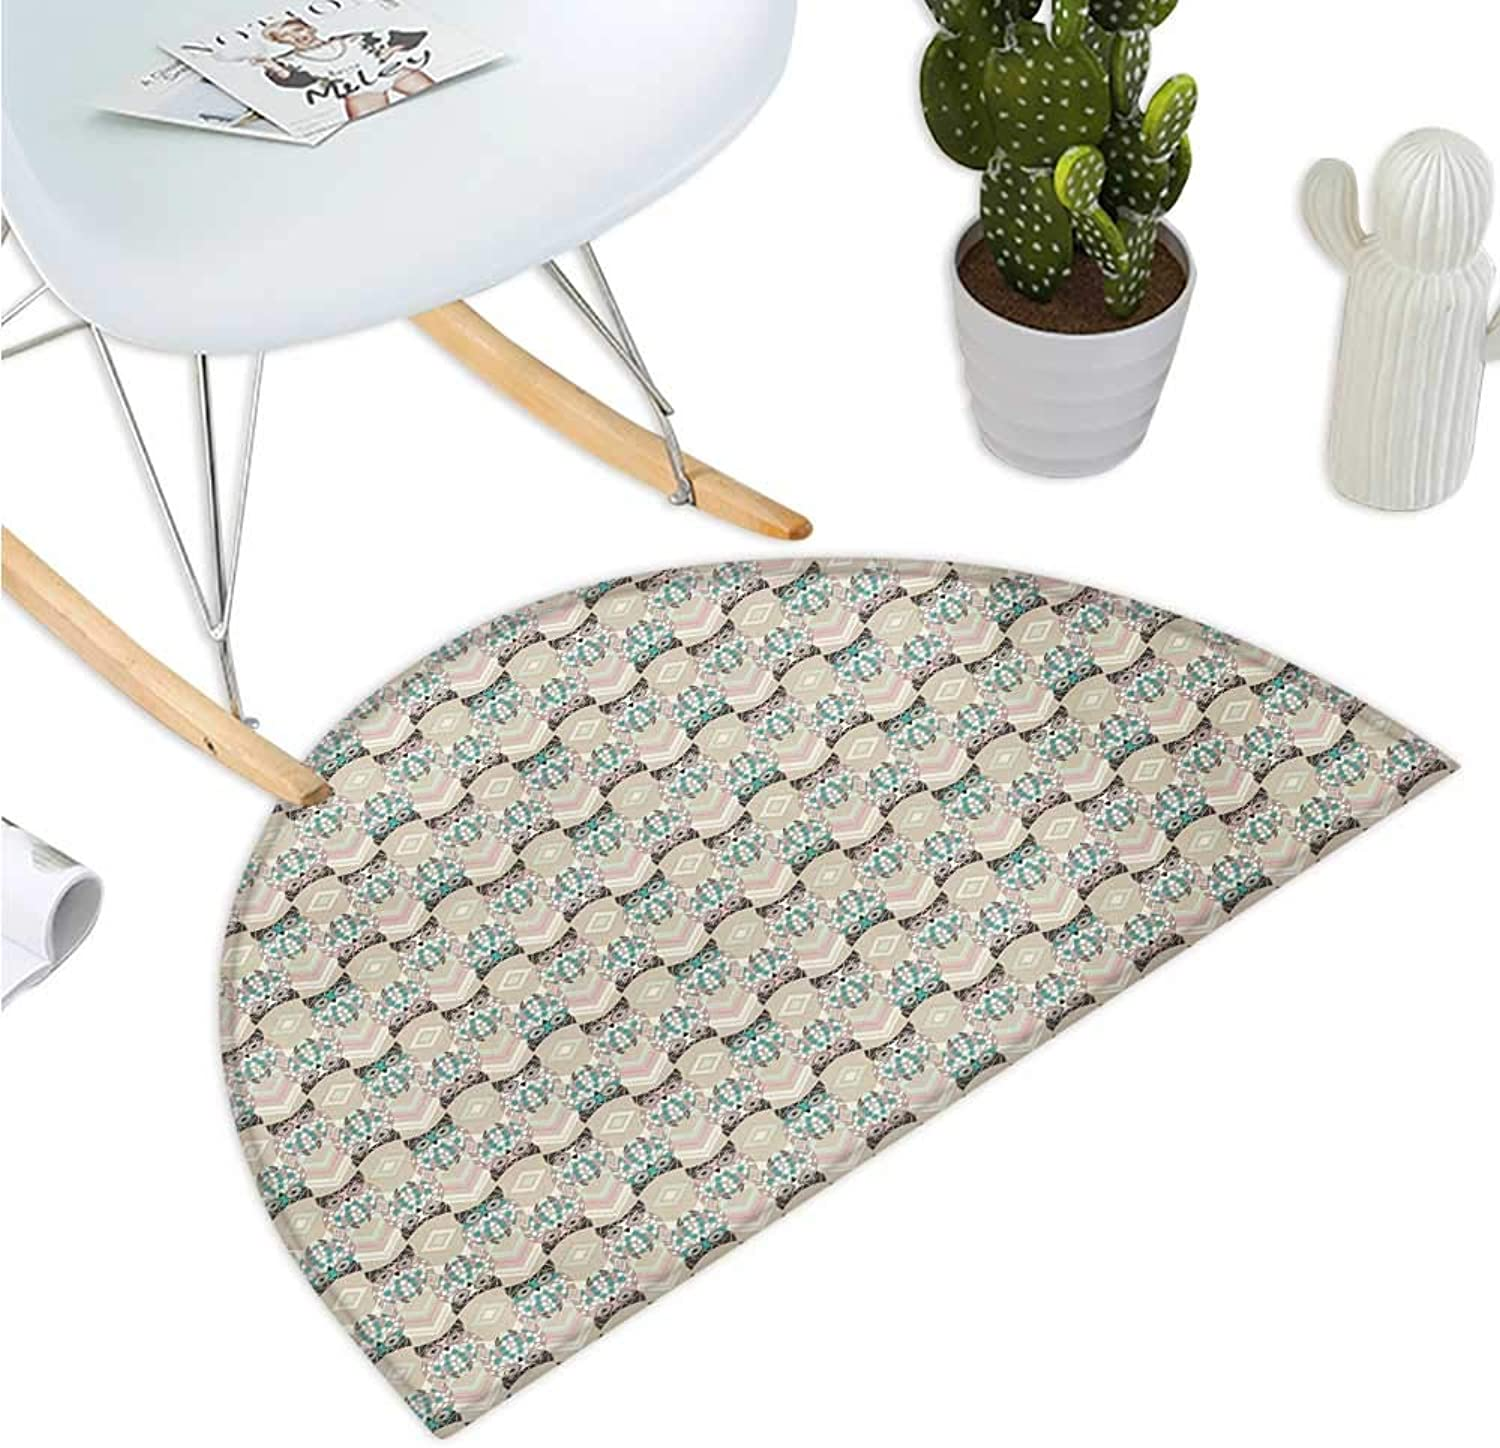 Owls Half Round Door mats Cute Pattern with Native an Geometric Ornaments Horizontal Zigzag Lines Entry Door Mat H 51.1  xD 76.7  Tan Turquoise Pale Pink